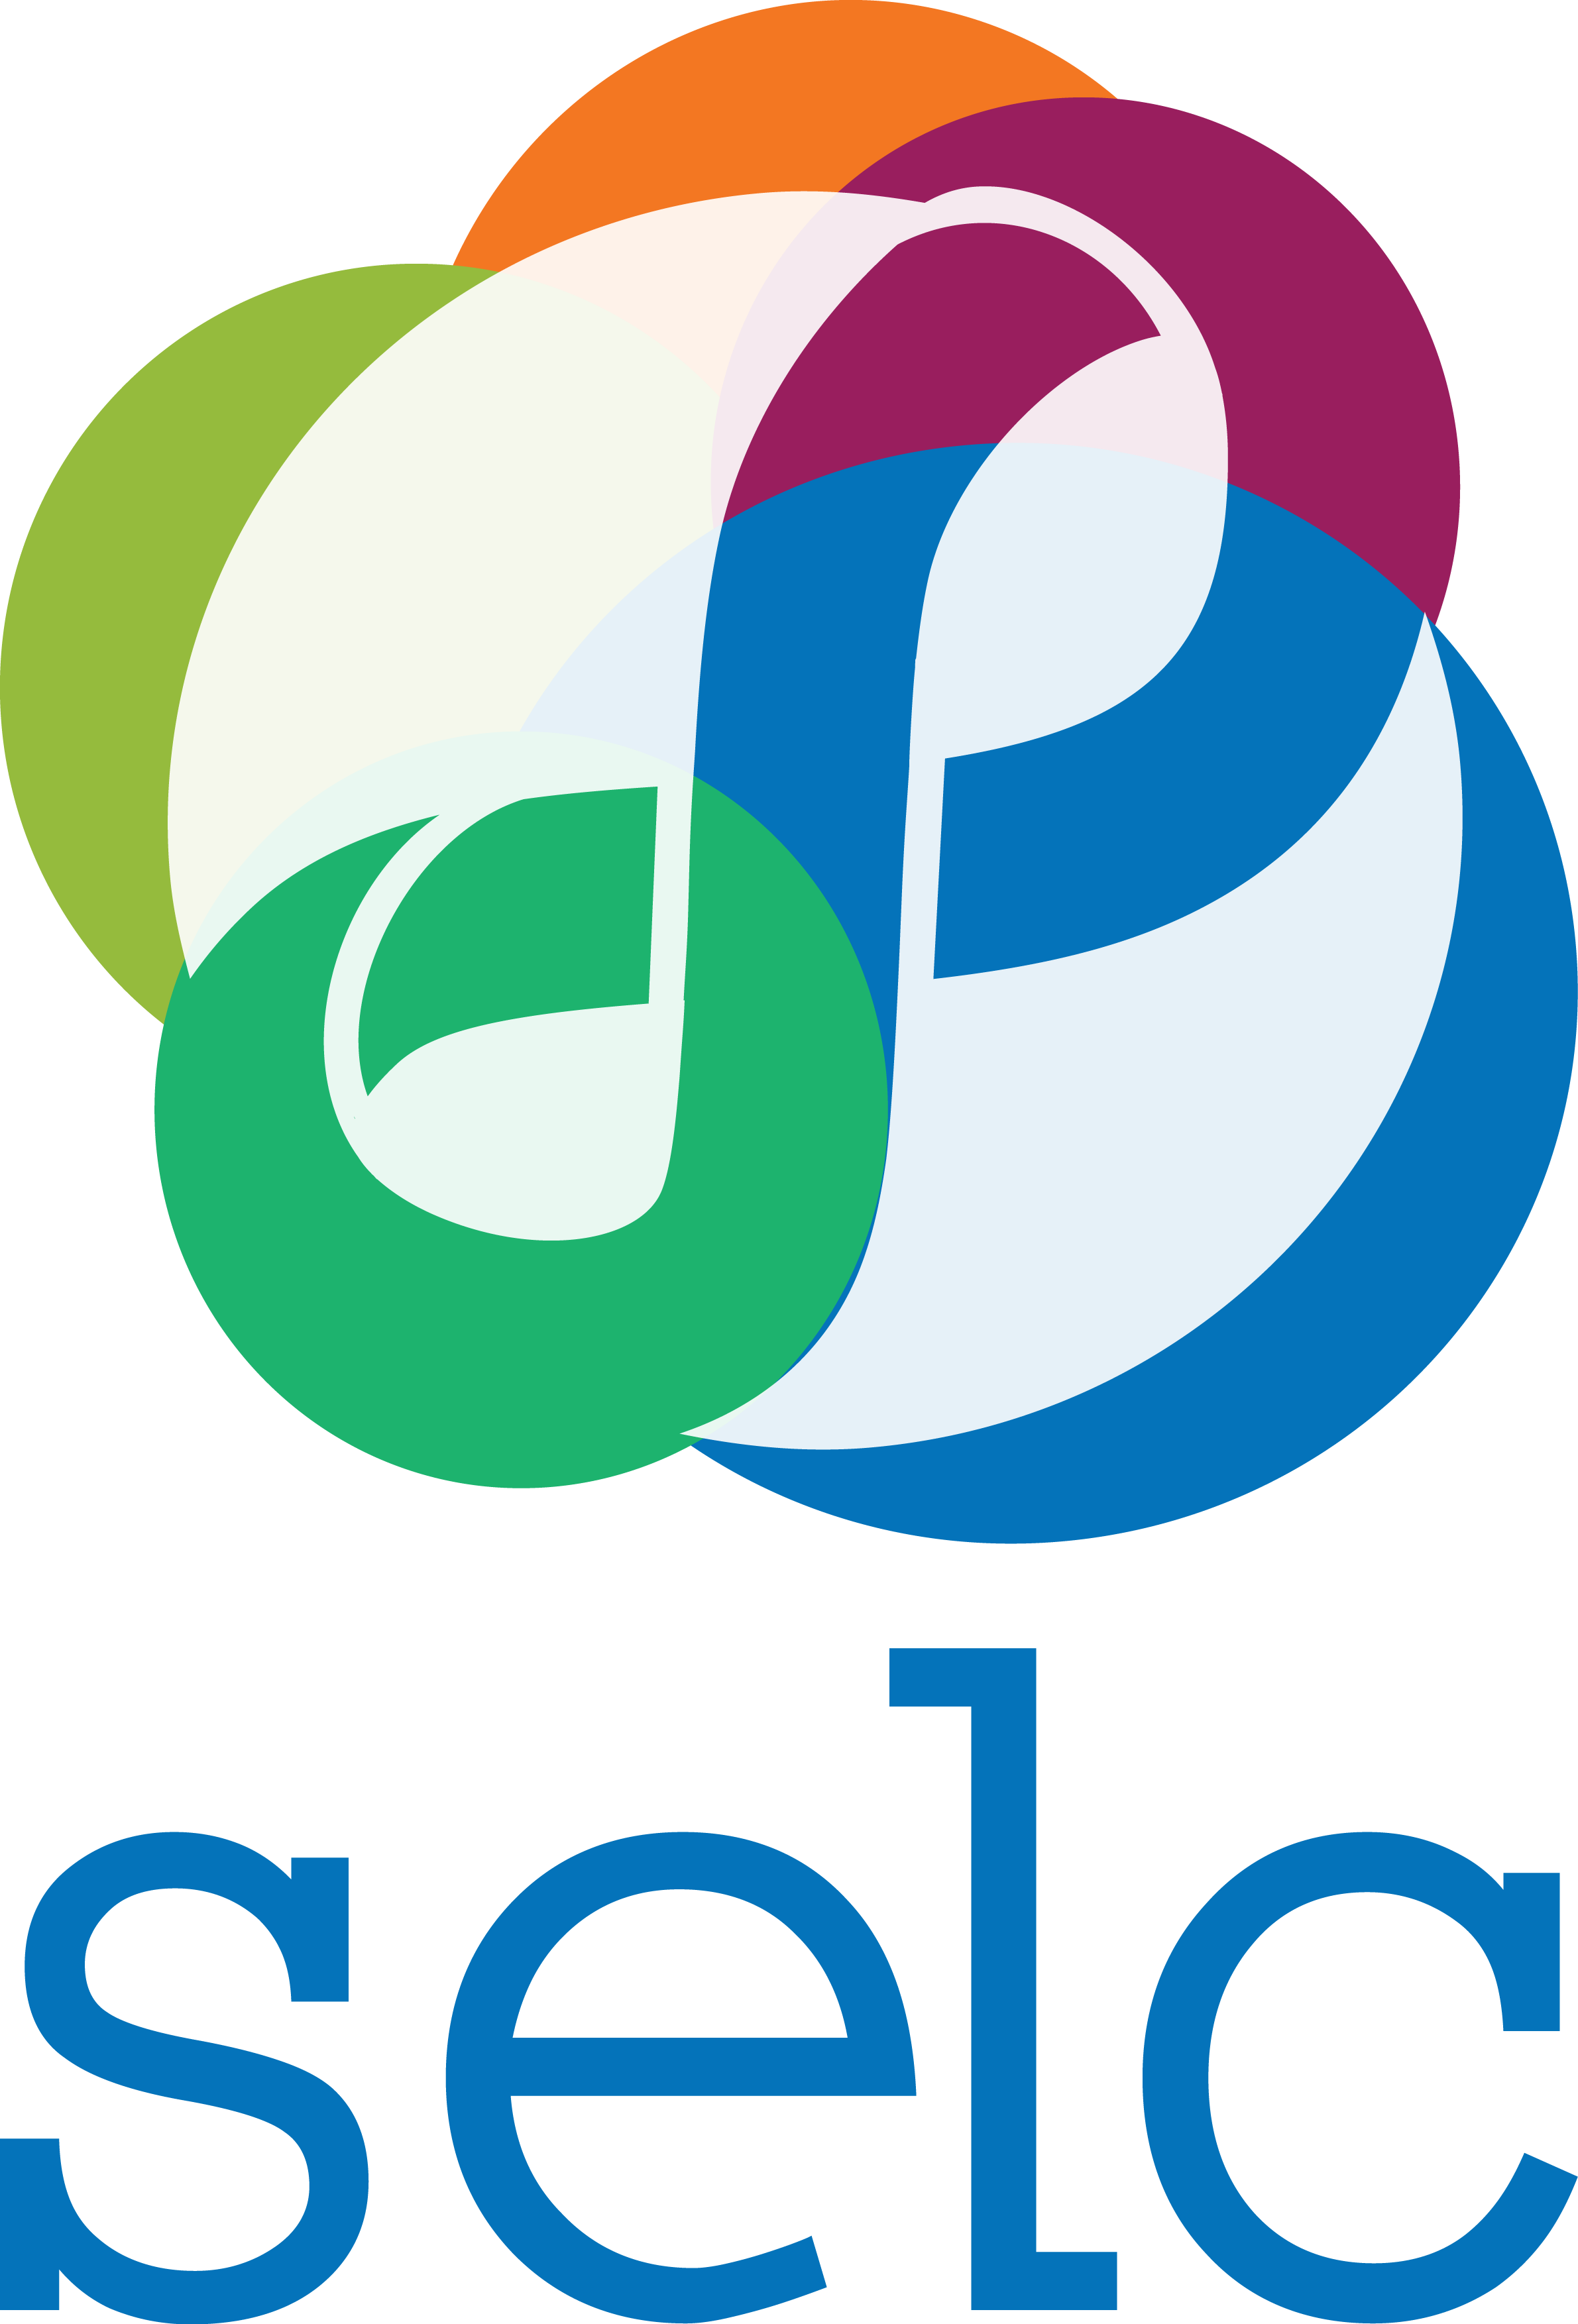 SELC_PrimaryLogo_colour_RGB(for_screen).png